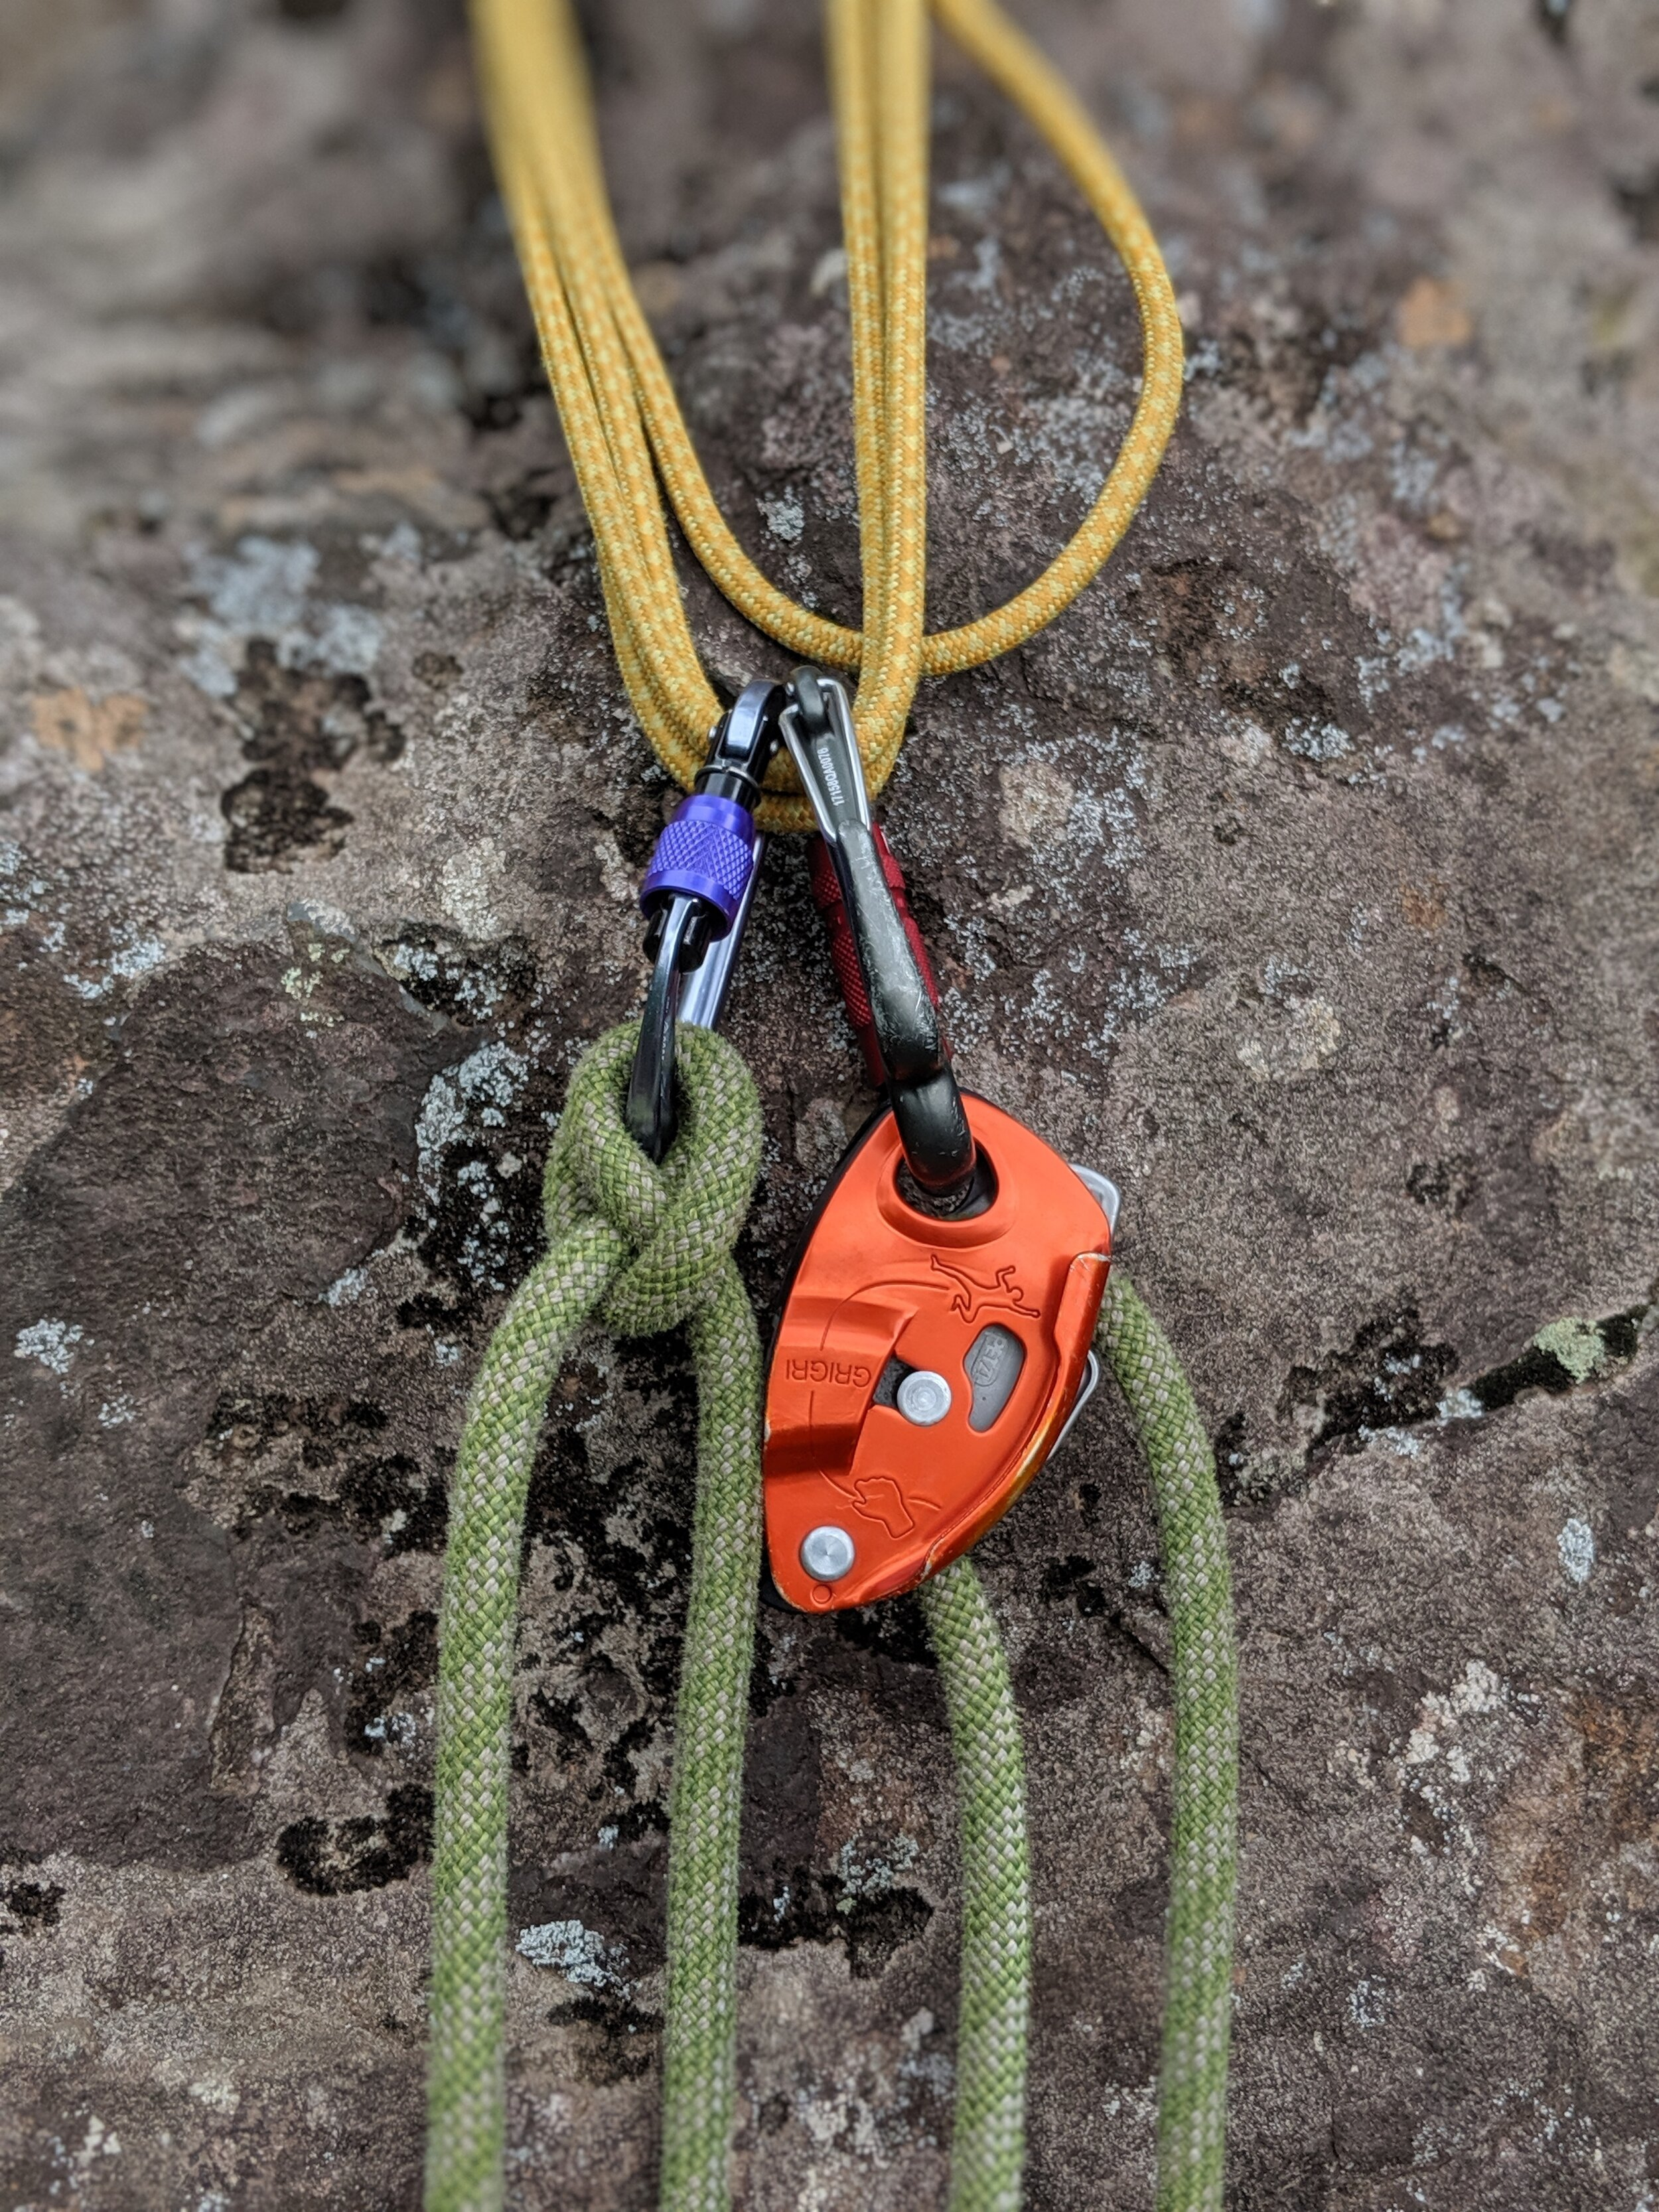 Words to Live By - As a climbing instructor, I try to keep a ready supply of pithy climbing advice to hand. Not my belay hand of course.